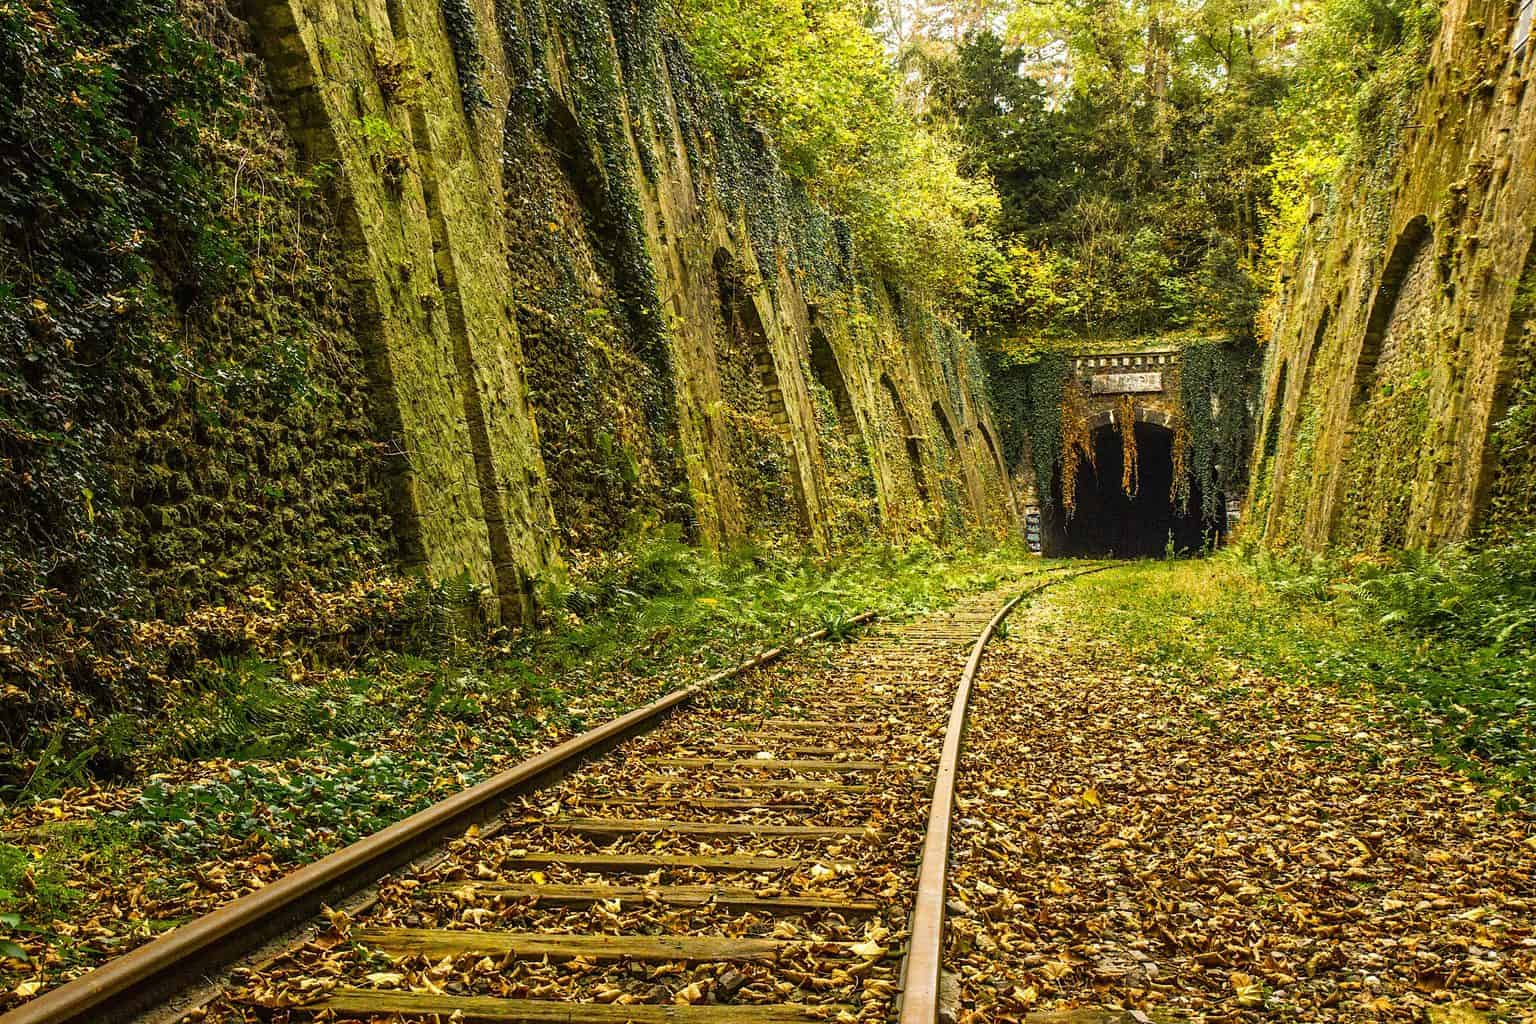 A section of the abandoned Petite Ceinture railway track, one of the many hidden gems in Paris.